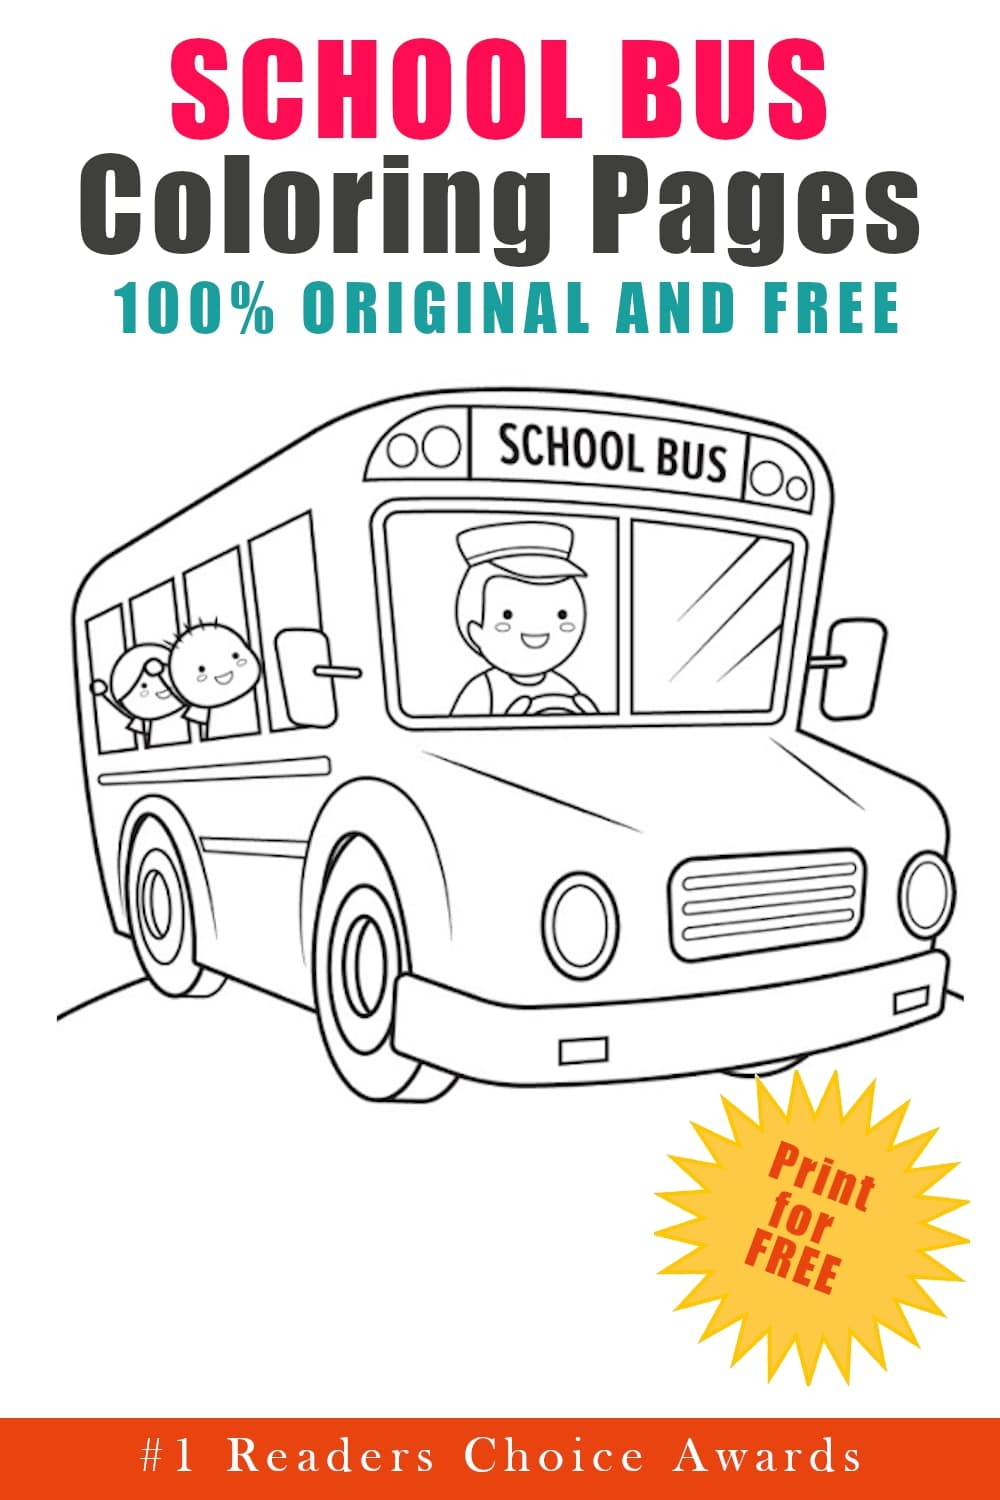 original and free school bus coloring pages